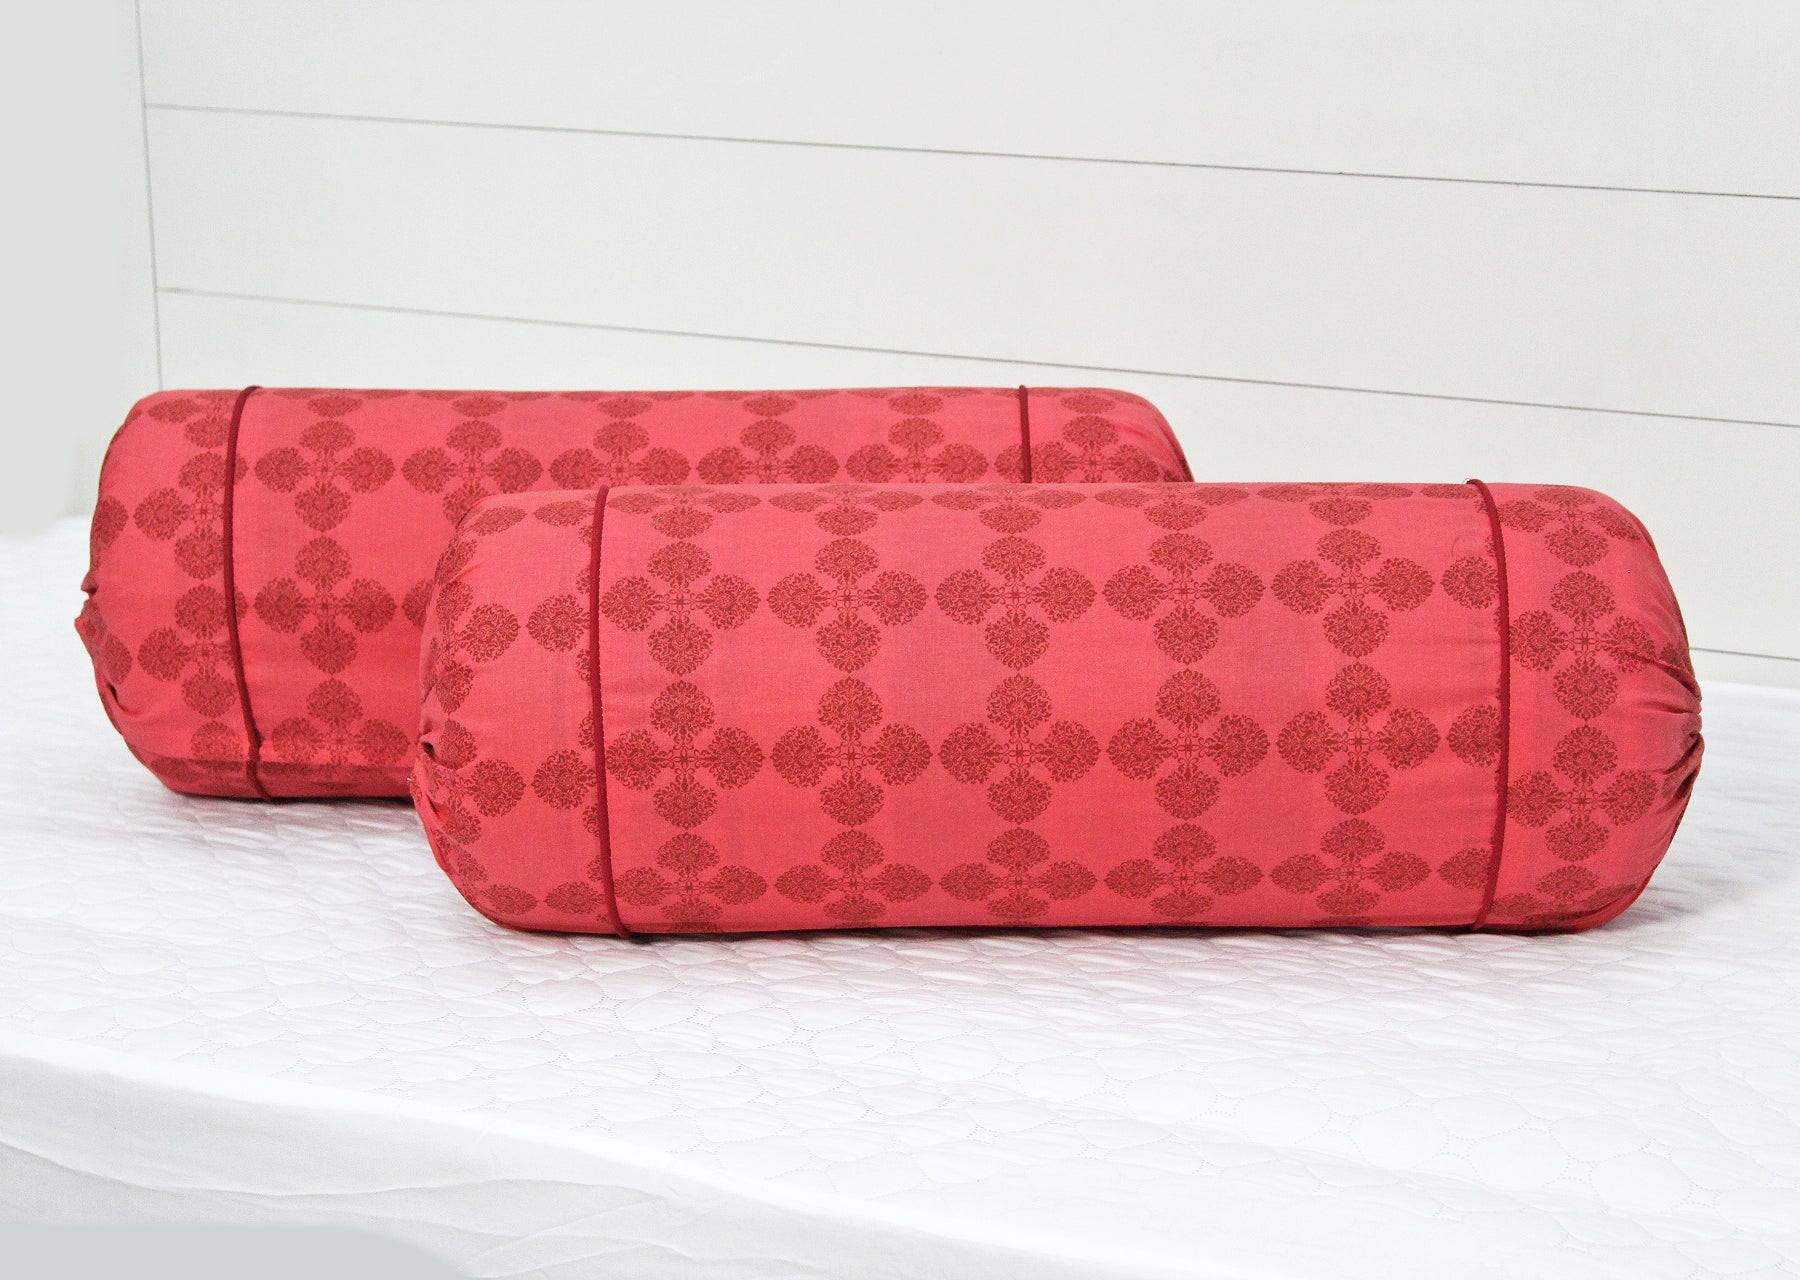 AURAVE Floral Print 2 Pieces Cotton Bolster Covers - Peach